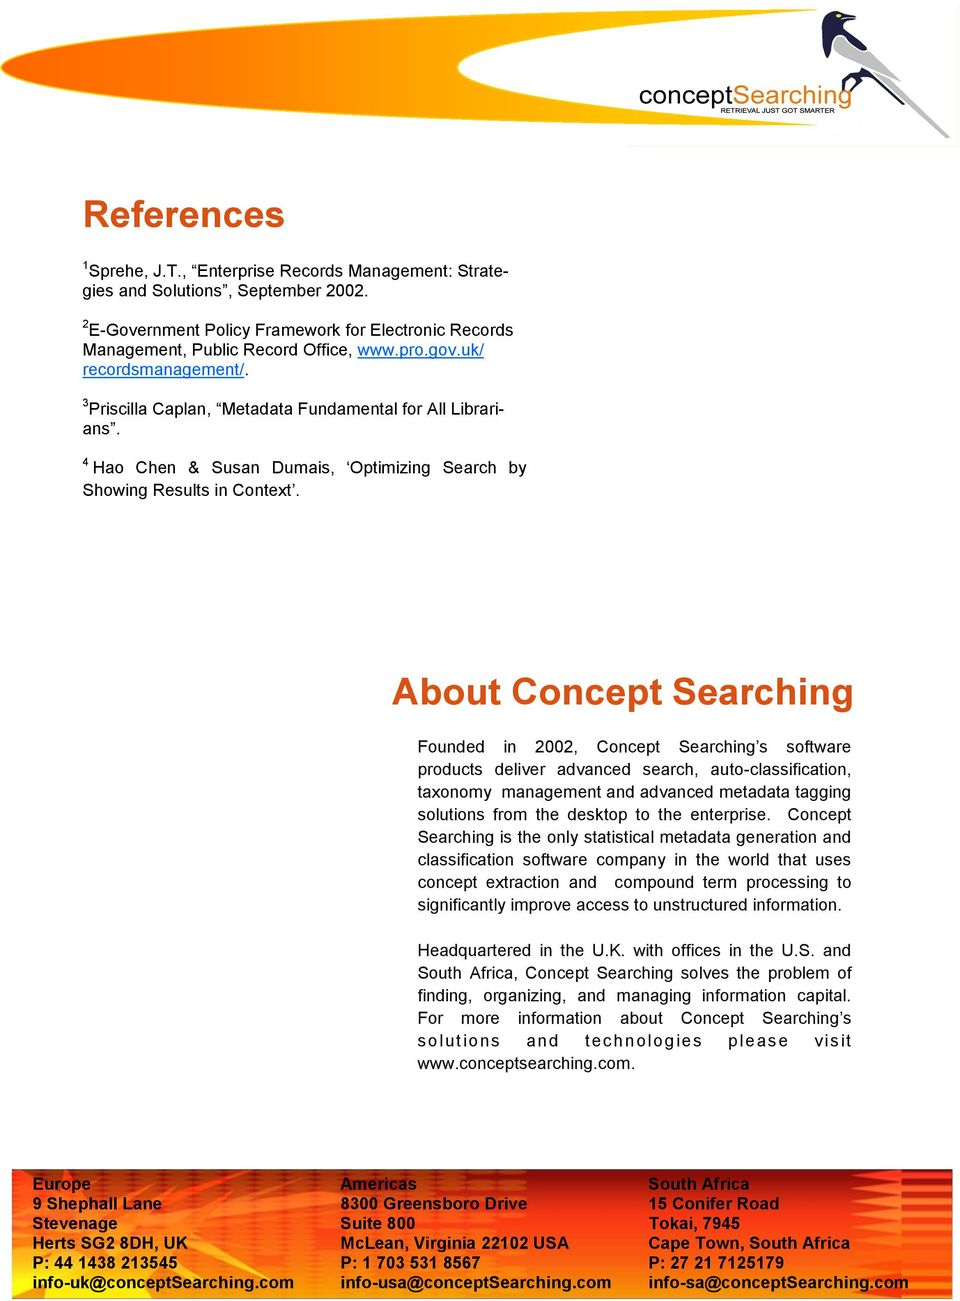 About Concept Searching Founded in 2002, Concept Searching s software products deliver advanced search, auto-classification, taxonomy management and advanced metadata tagging solutions from the